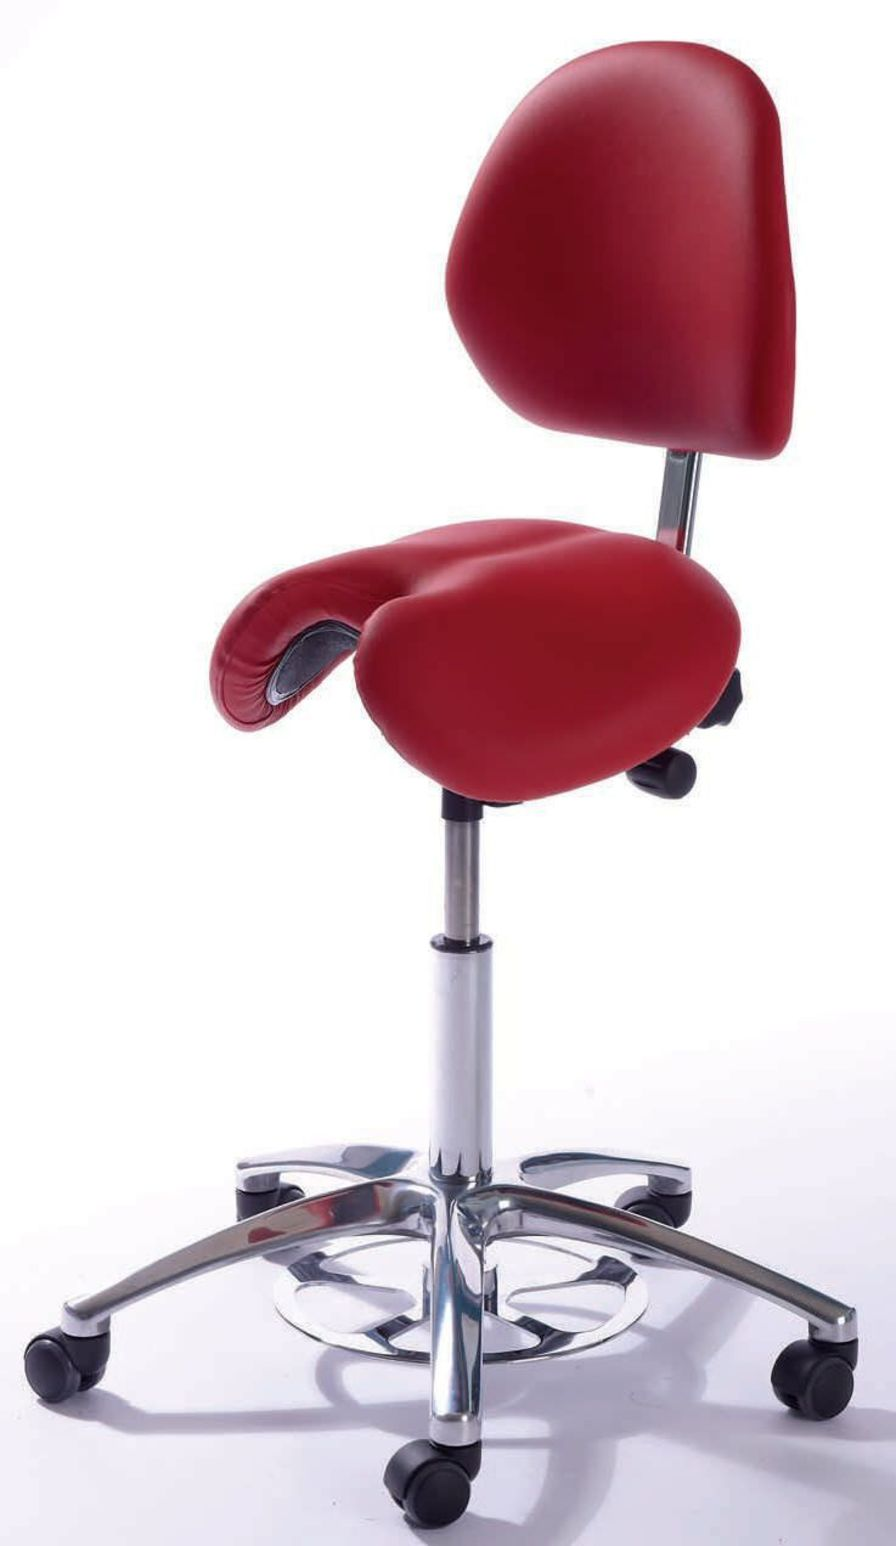 Medical stool / height-adjustable / on casters / with backrest CL Jolly Global Stole